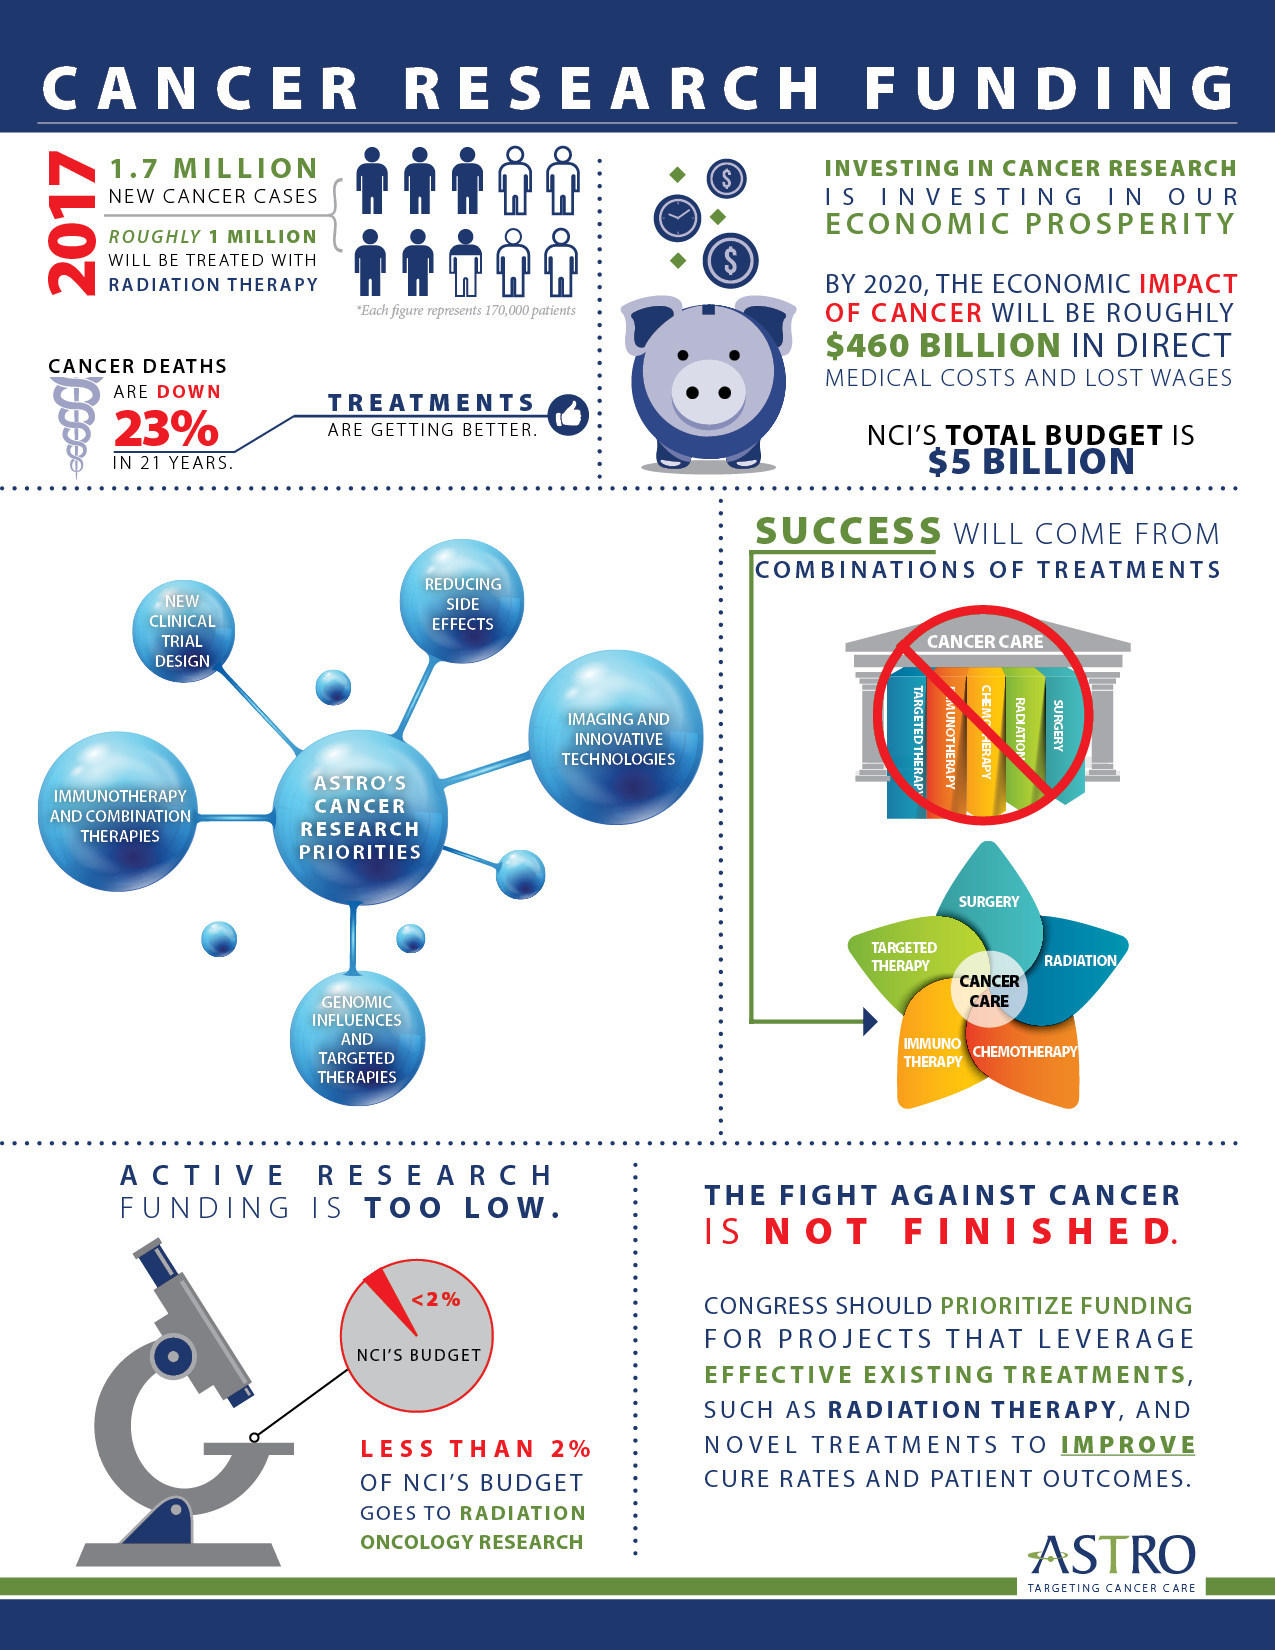 Cancer Research Funding Infographic from the American Society for Radiation Oncology (ASTRO)